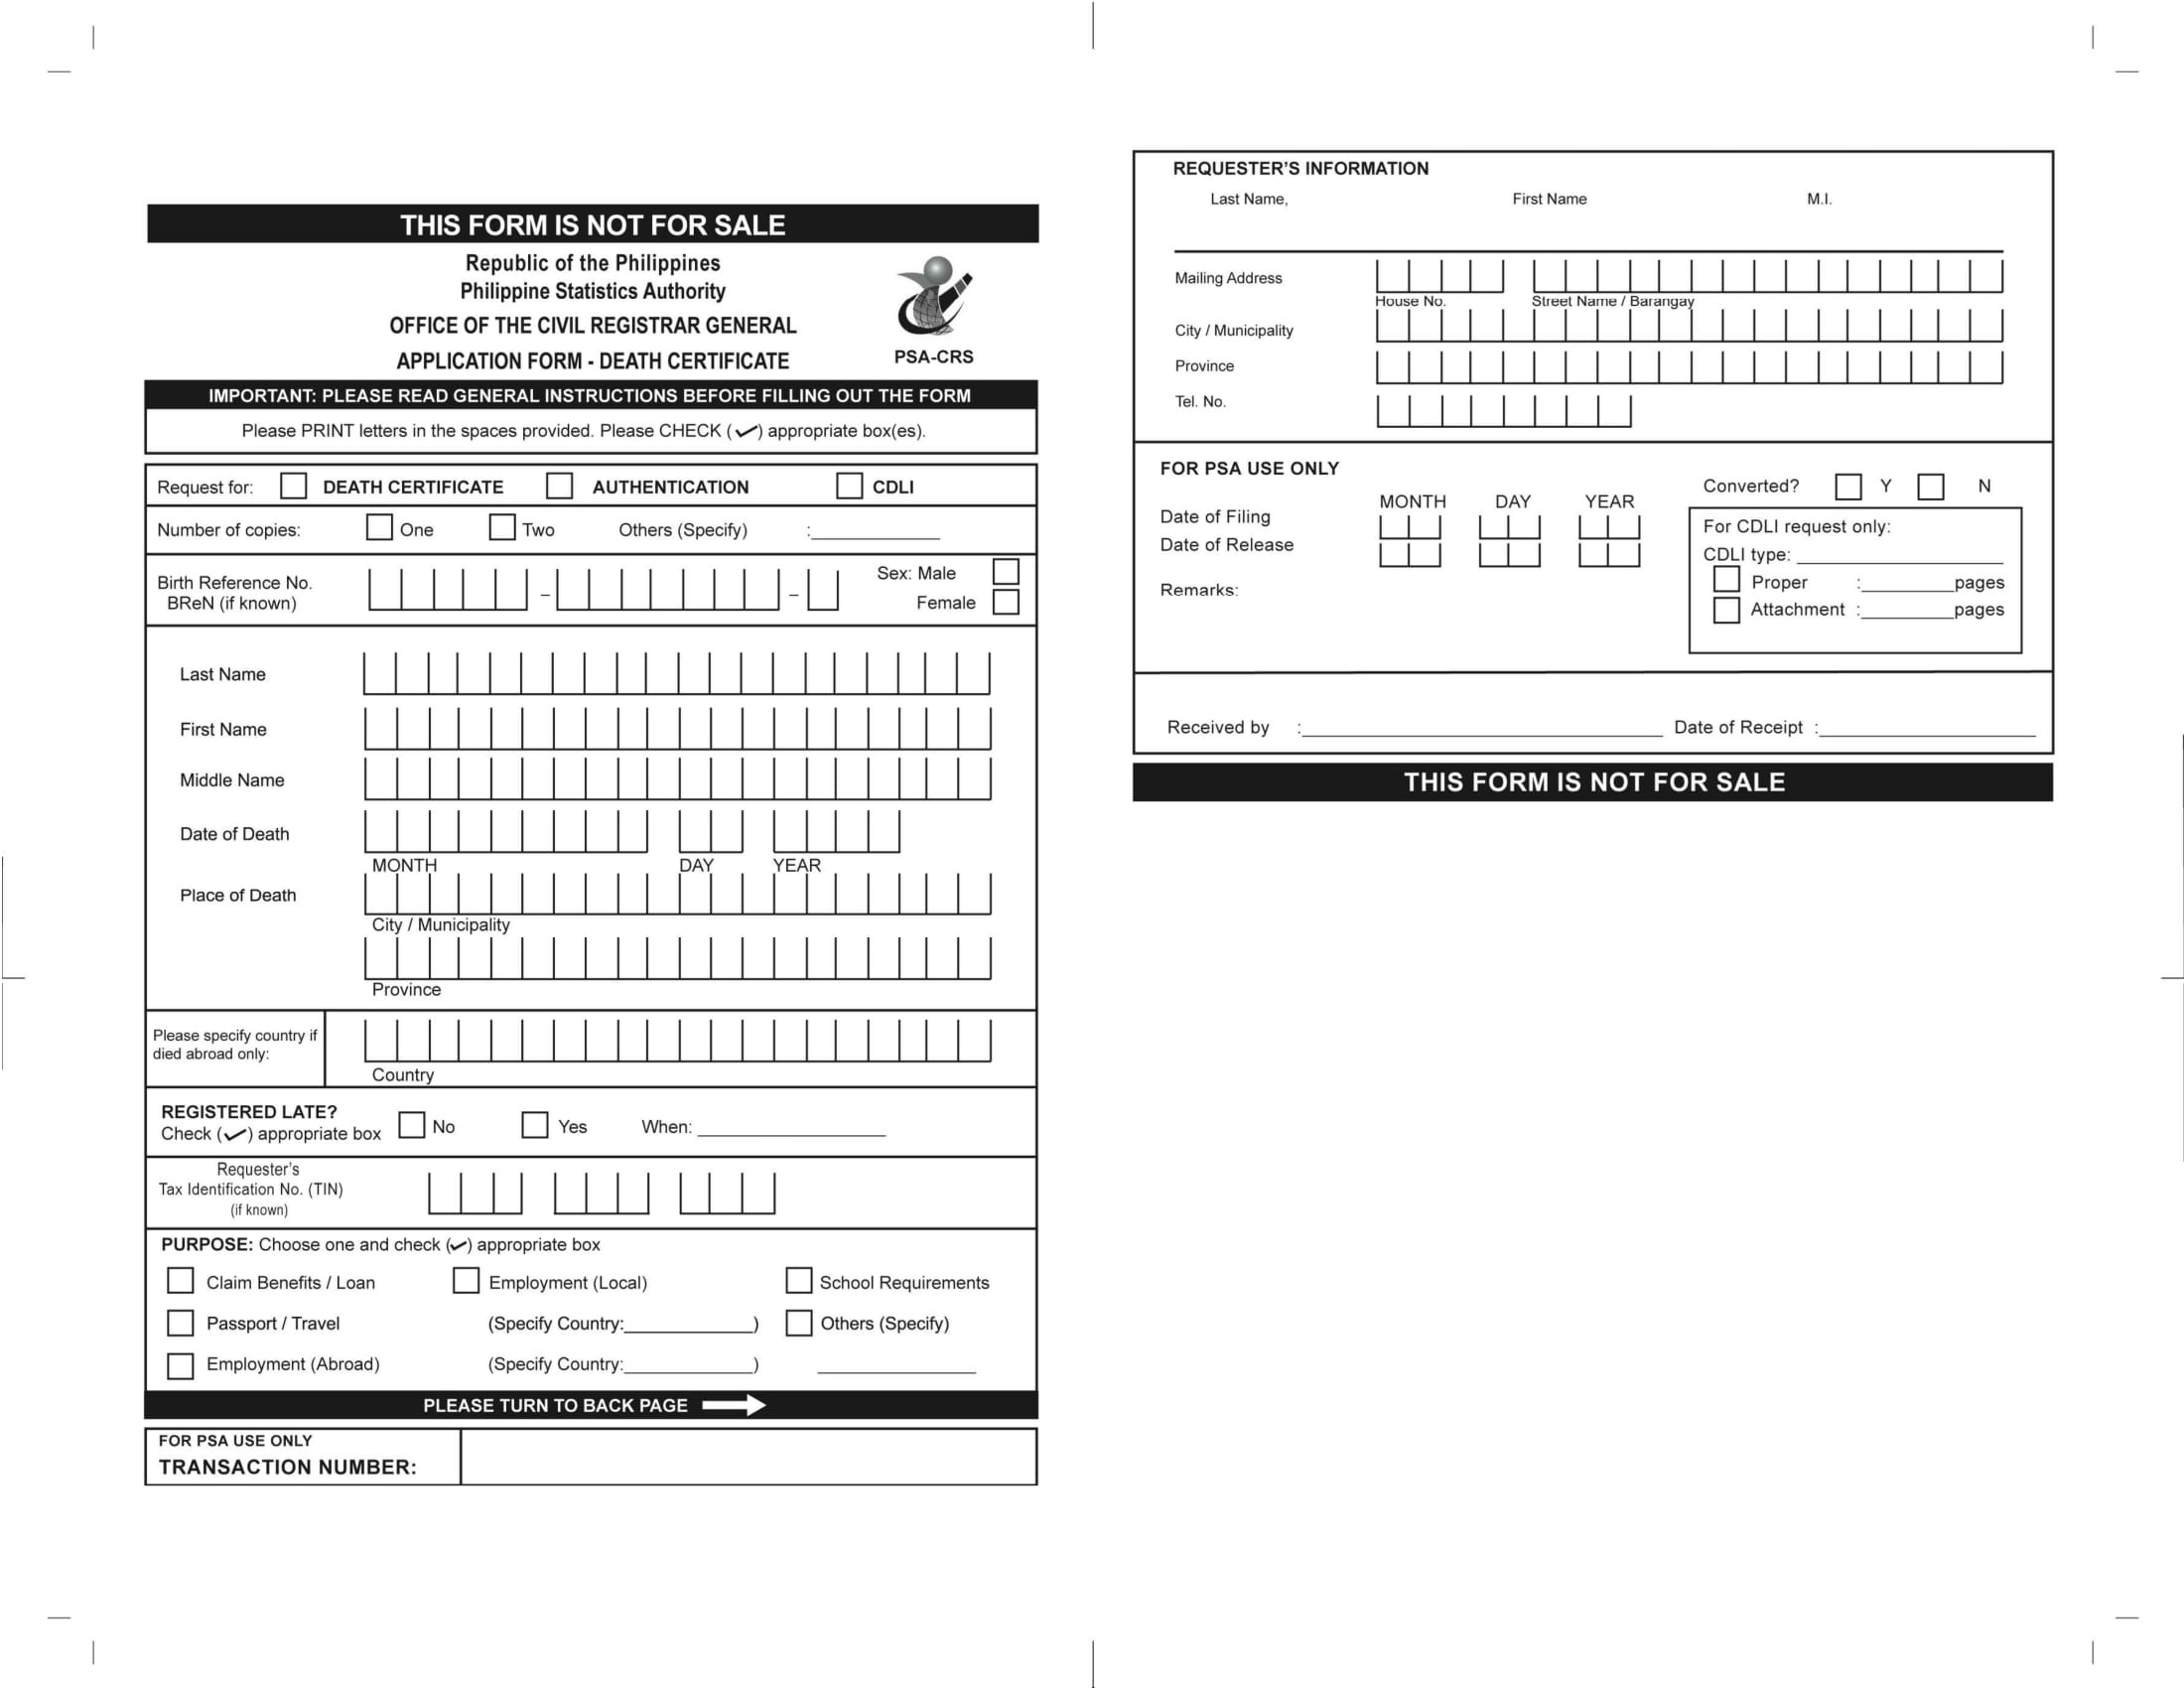 death certificate application form 1